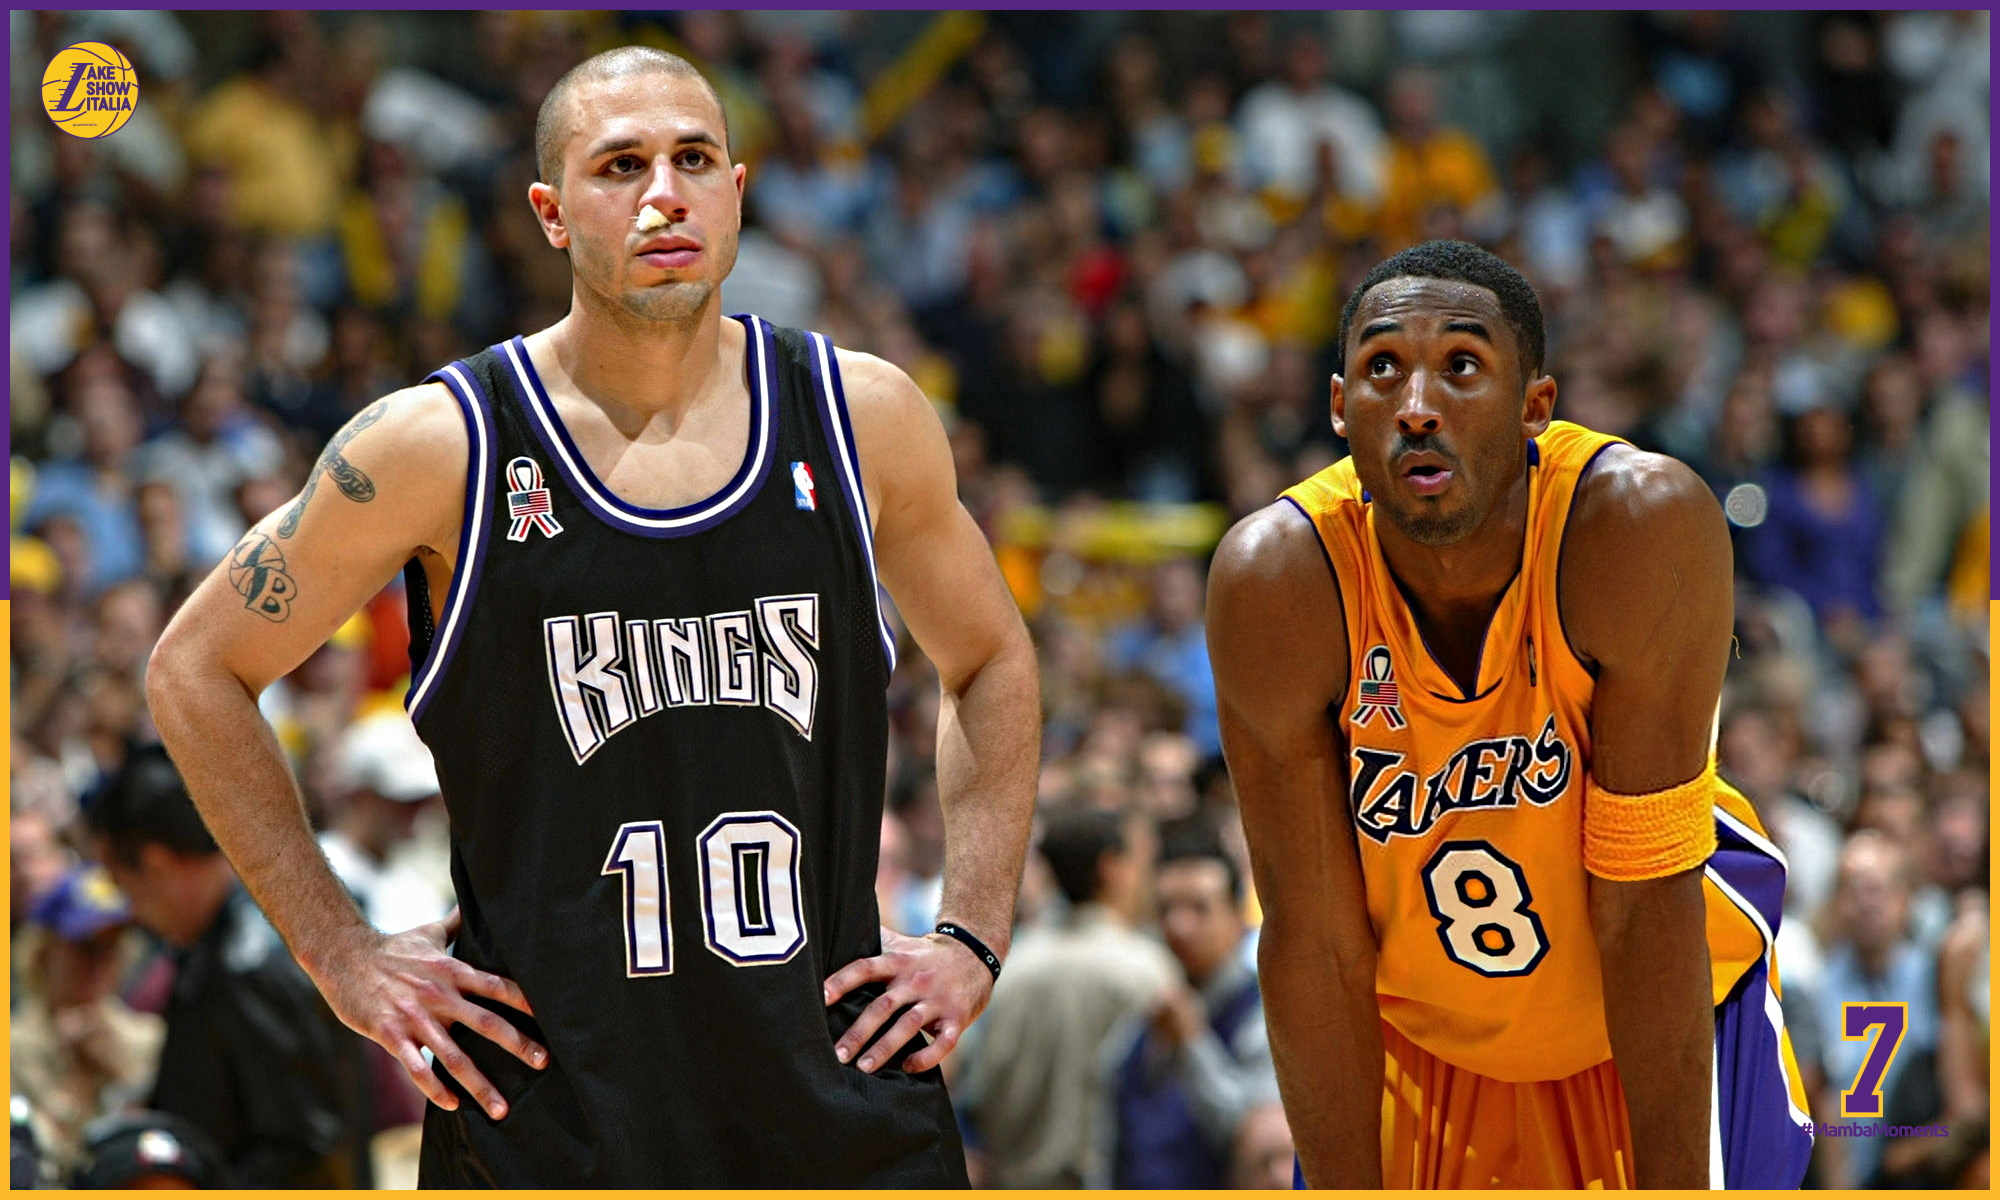 Kobe Bryant and Mike Bibby